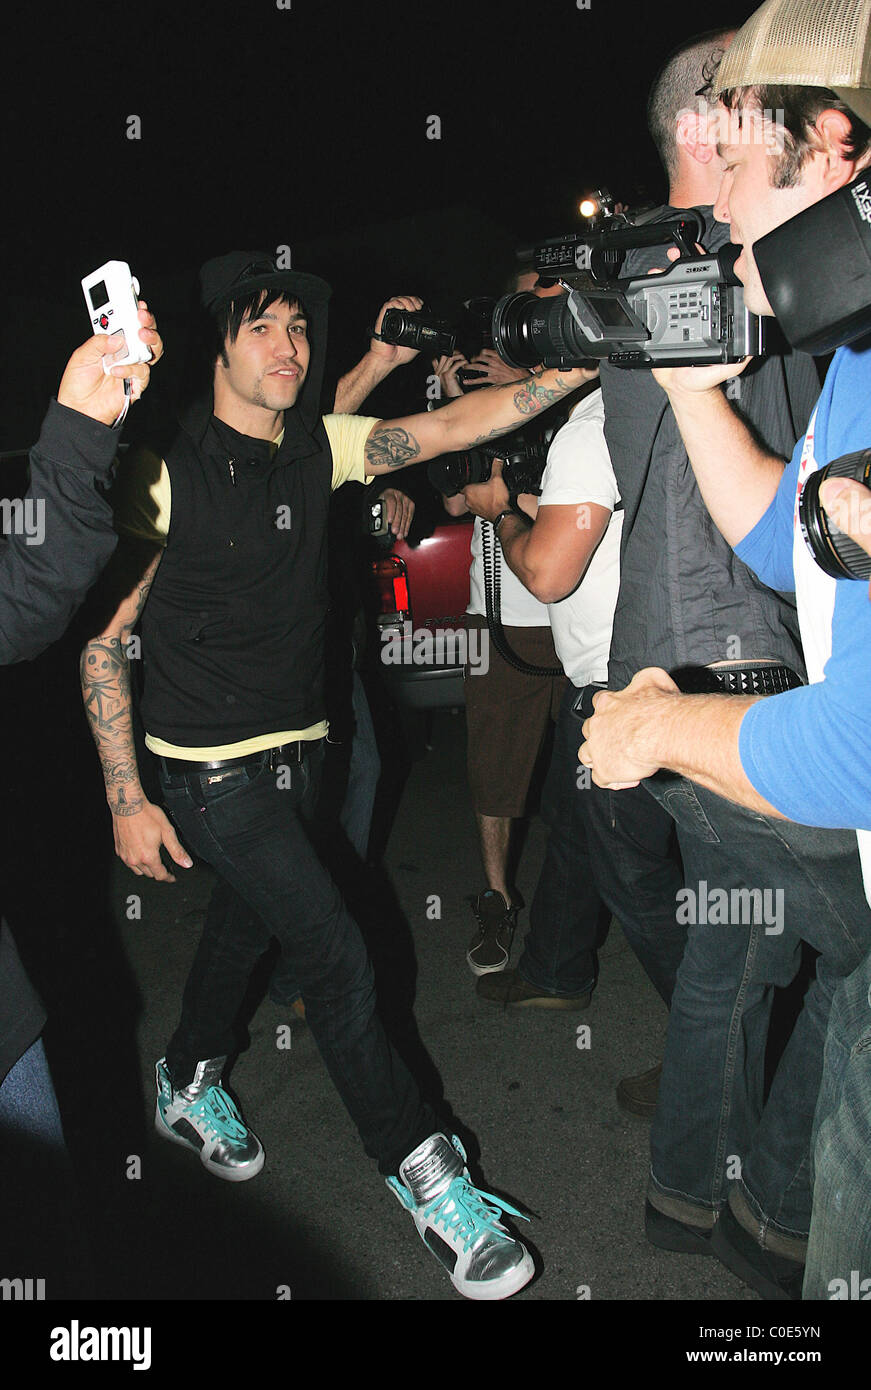 Pete Wentz Leaves Mr Chow restaurant via the back door while the rest of the band mates leave from the front door Hollywood  sc 1 st  Alamy & Pete Wentz Leaves Mr Chow restaurant via the back door while the ...